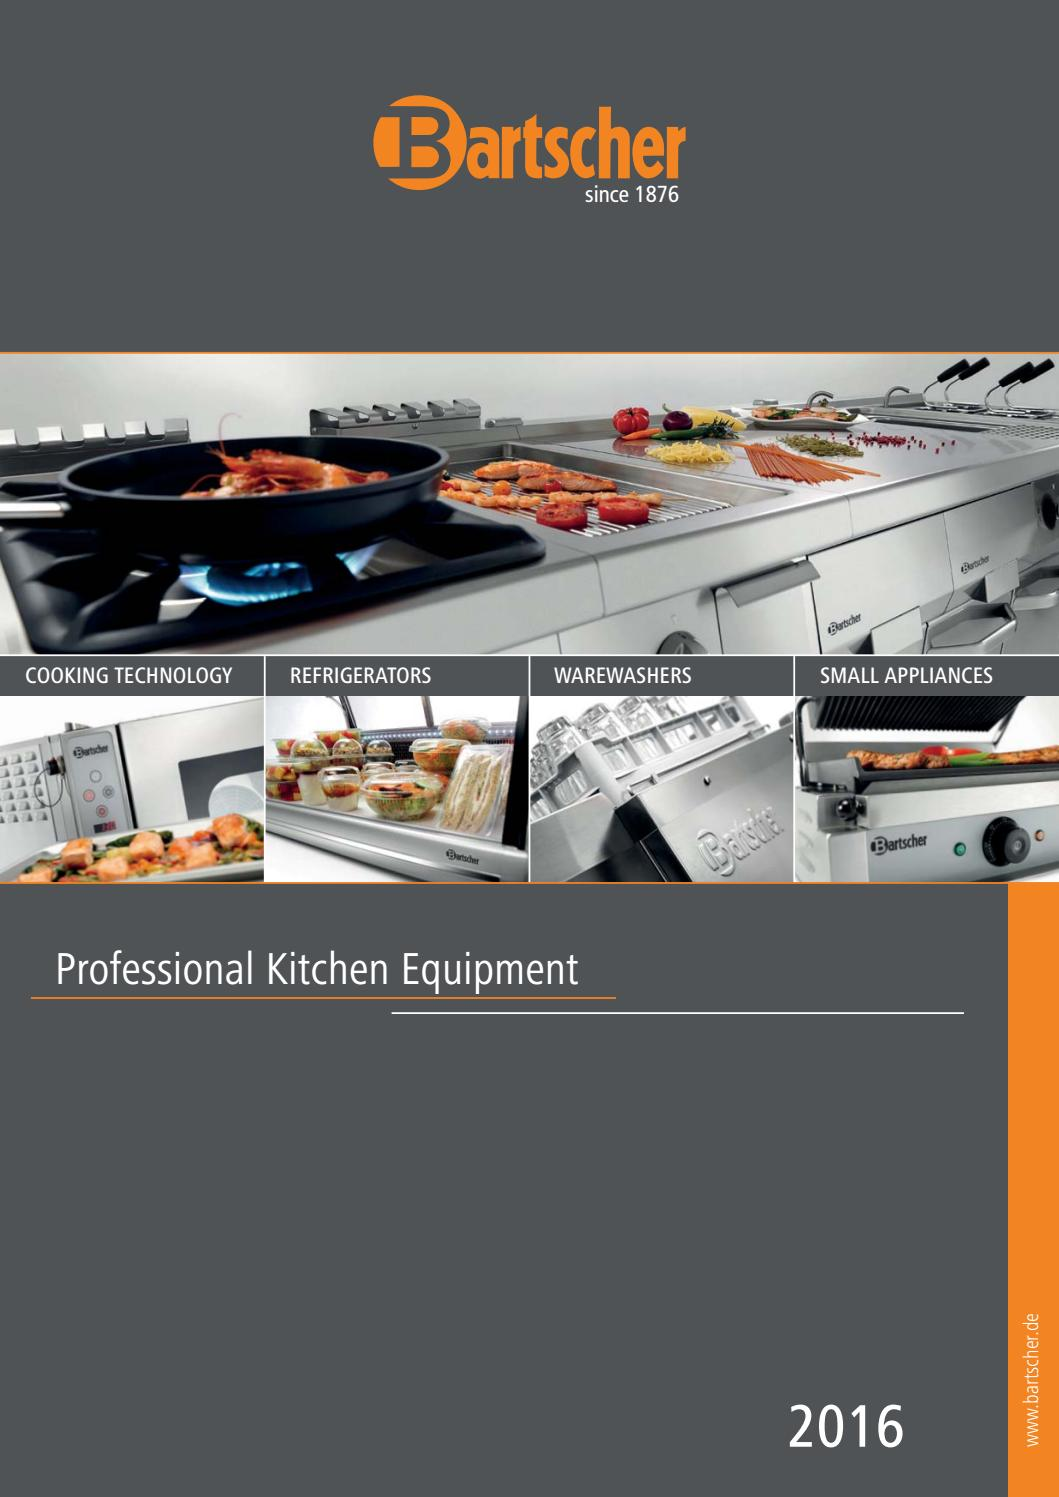 Bartscher Katalog 2016 Gb By Gmbh Issuu Electric 6 24kw Open Radiant Elements 2 1 Gn Oven With 4 Rack